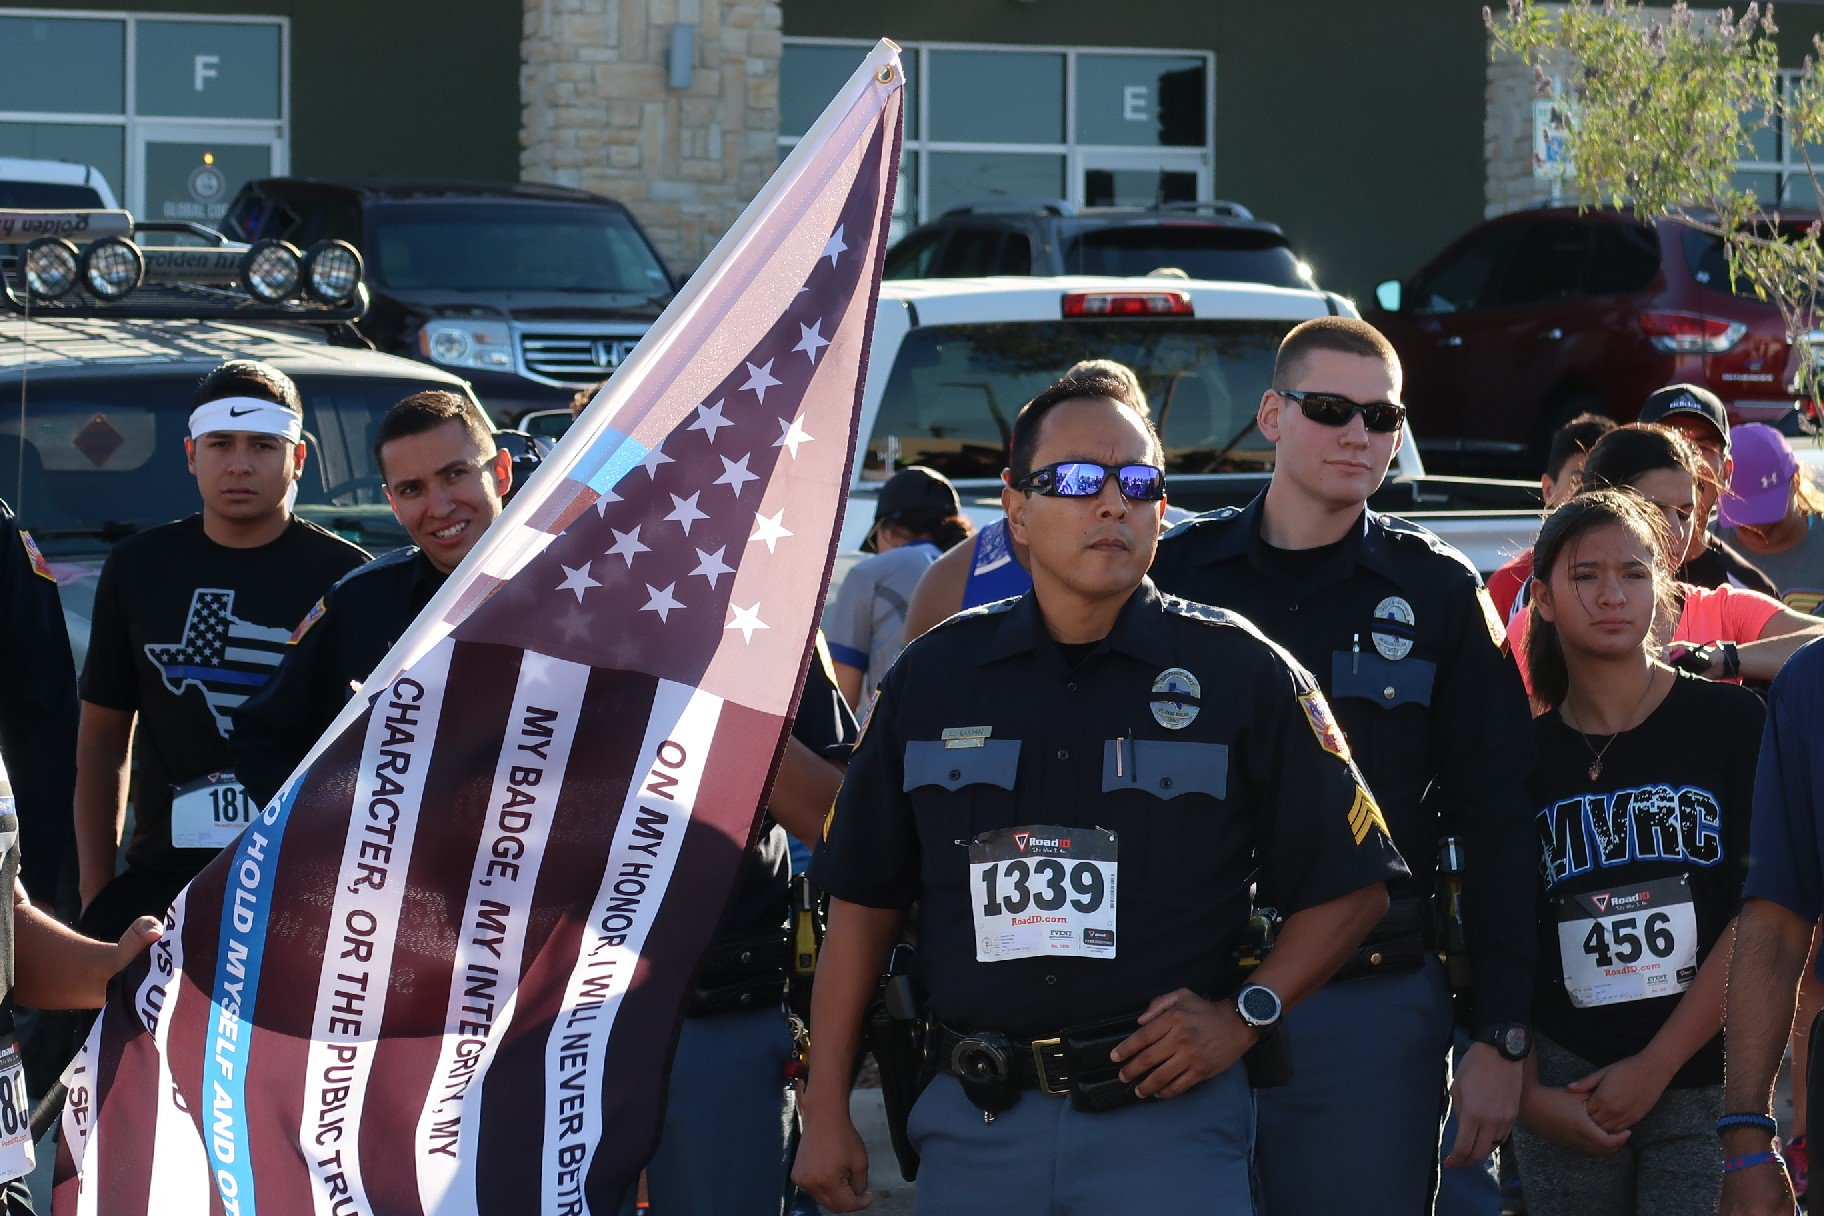 The 4th Annual Police Memorial Run (Officers from Mission Valley Regional Command) Ran In Full Duty Uniform https://t.co/GfhUyeyppF